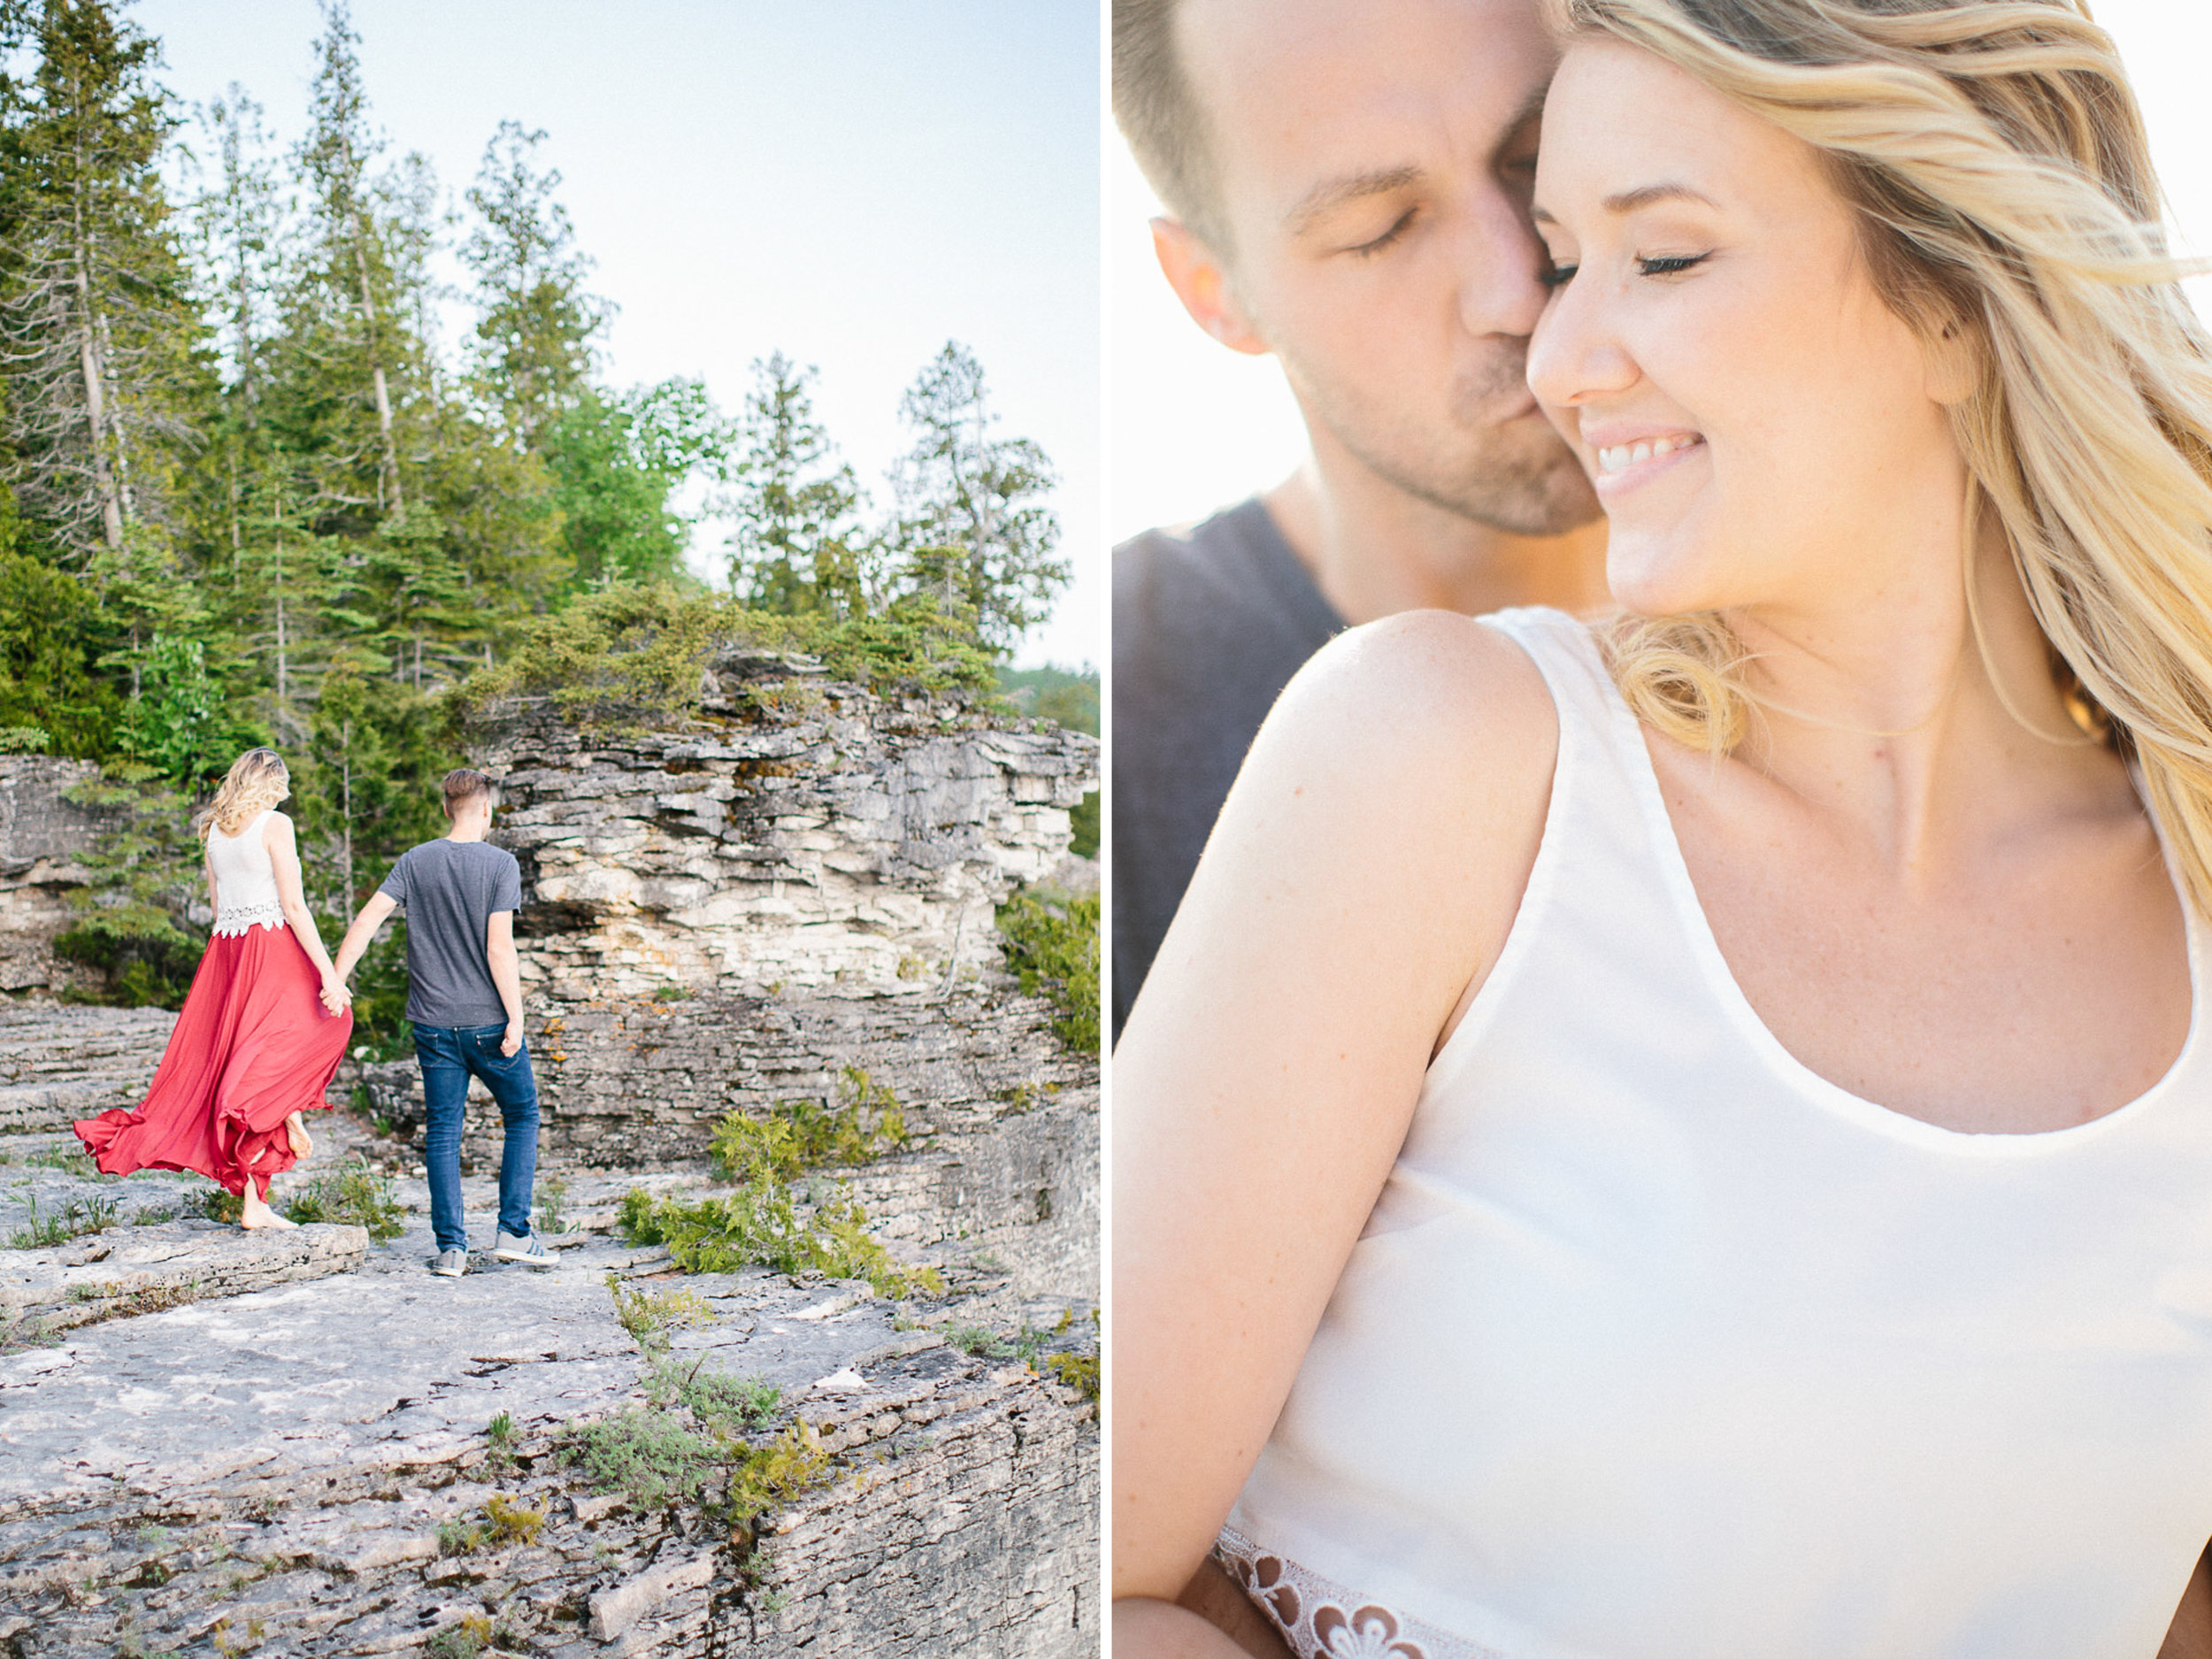 couples_adventure_session_tobermory6.jpg